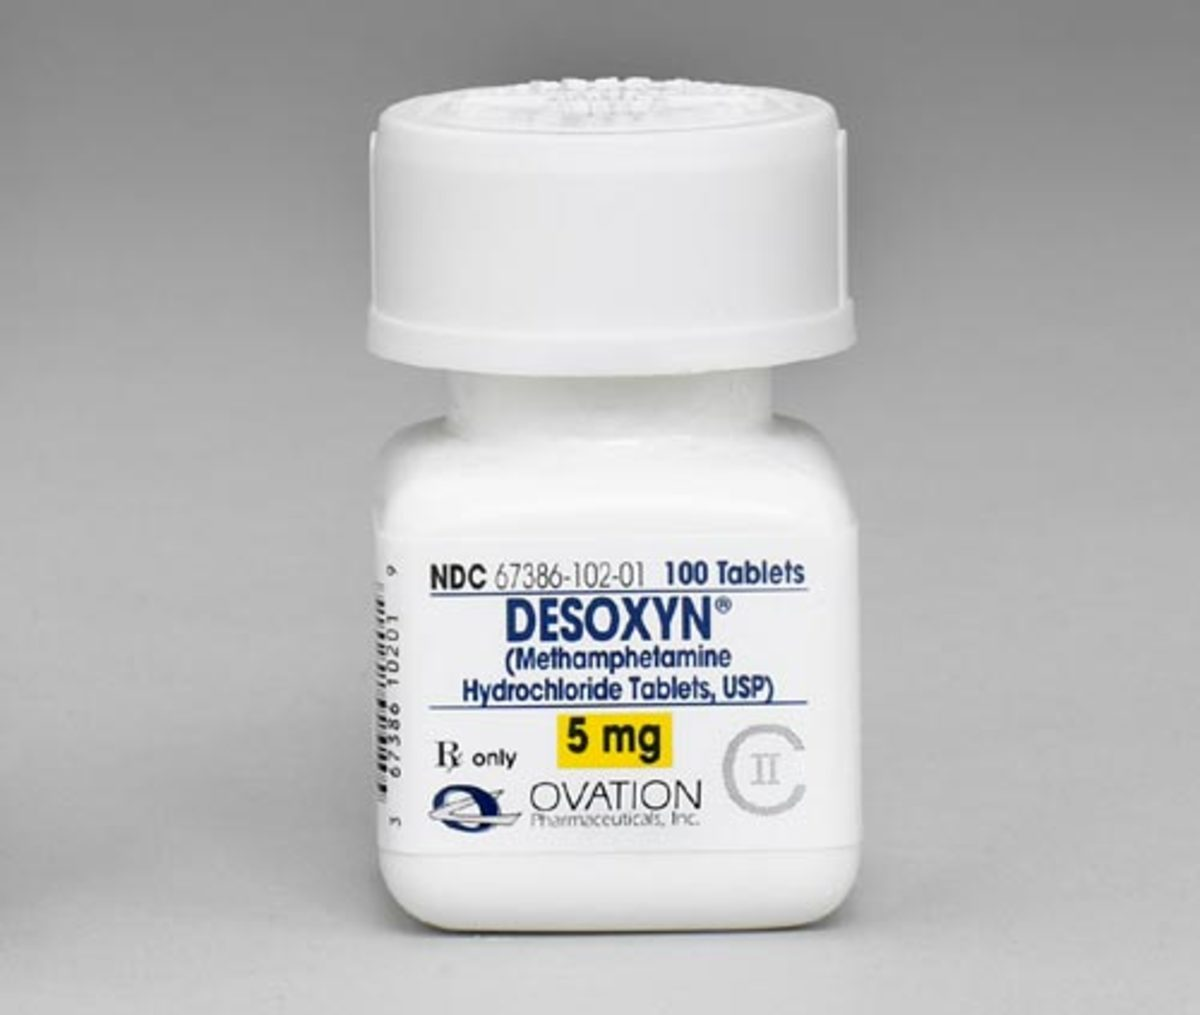 Desoxyn: FDA-Approved Methamphetamine